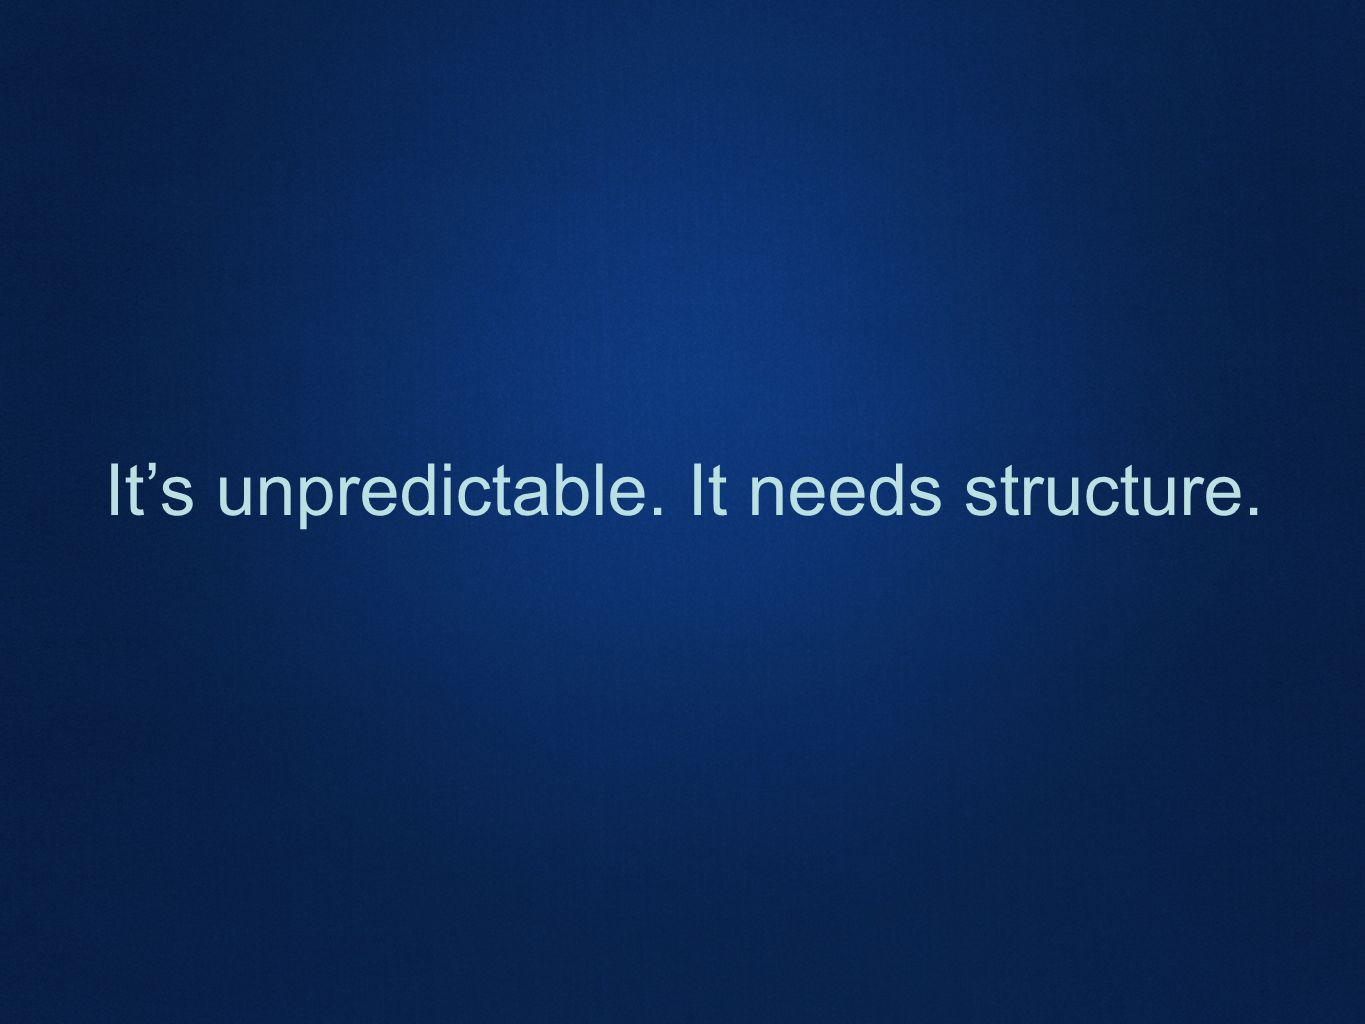 It's unpredictable. It needs structure.